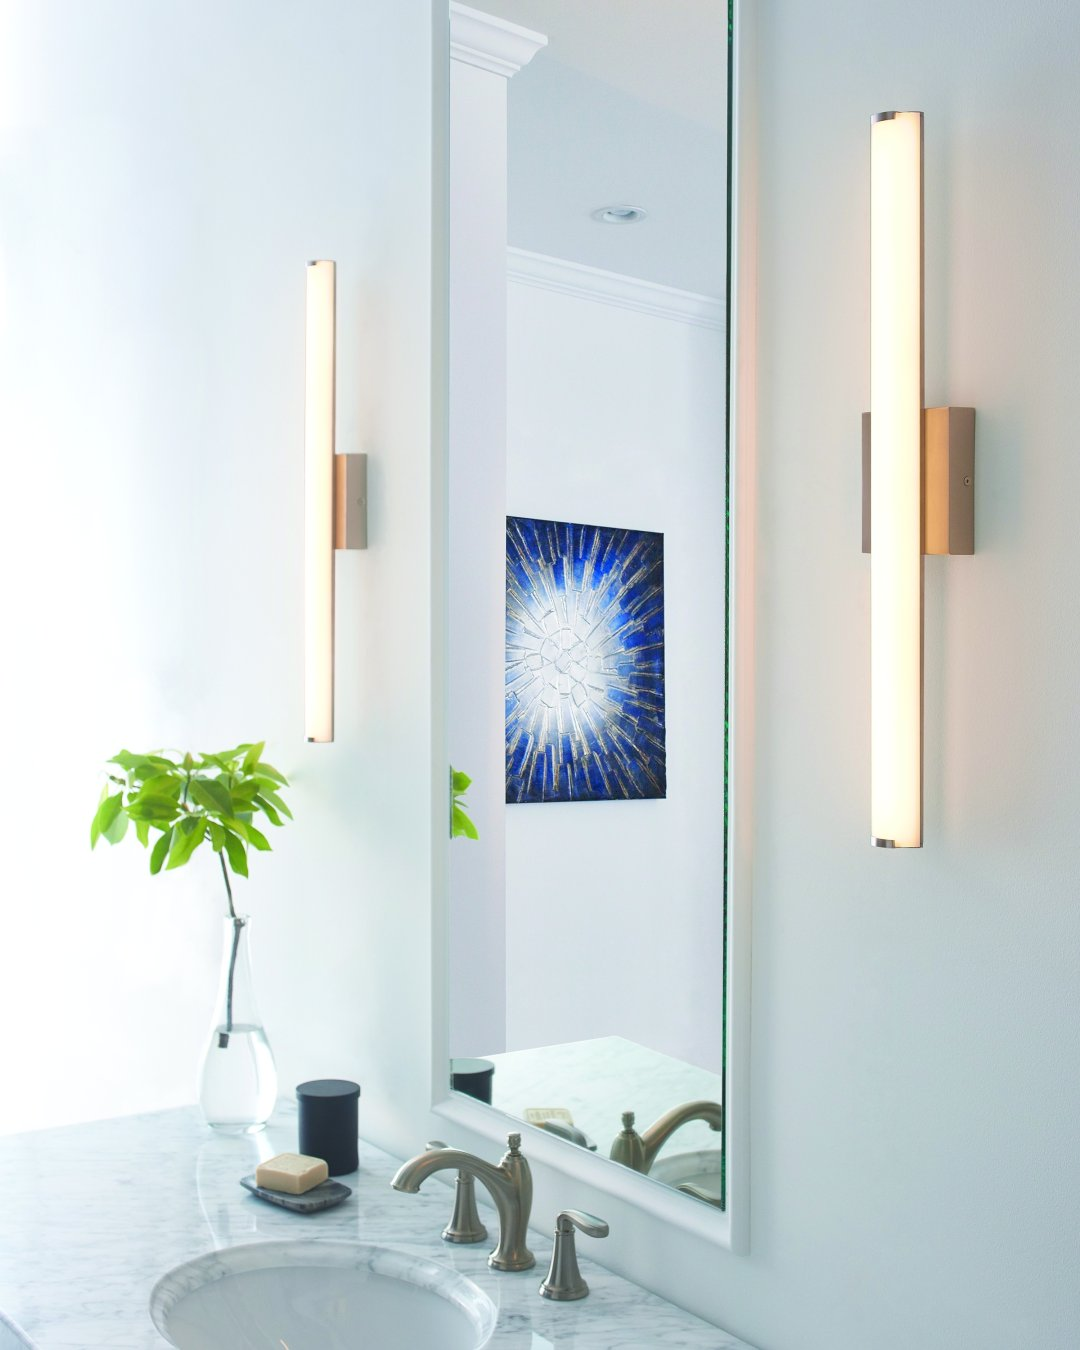 Bathroom Lighting Tips bathroom lighting ideas | 3 tips for better bath lighting at